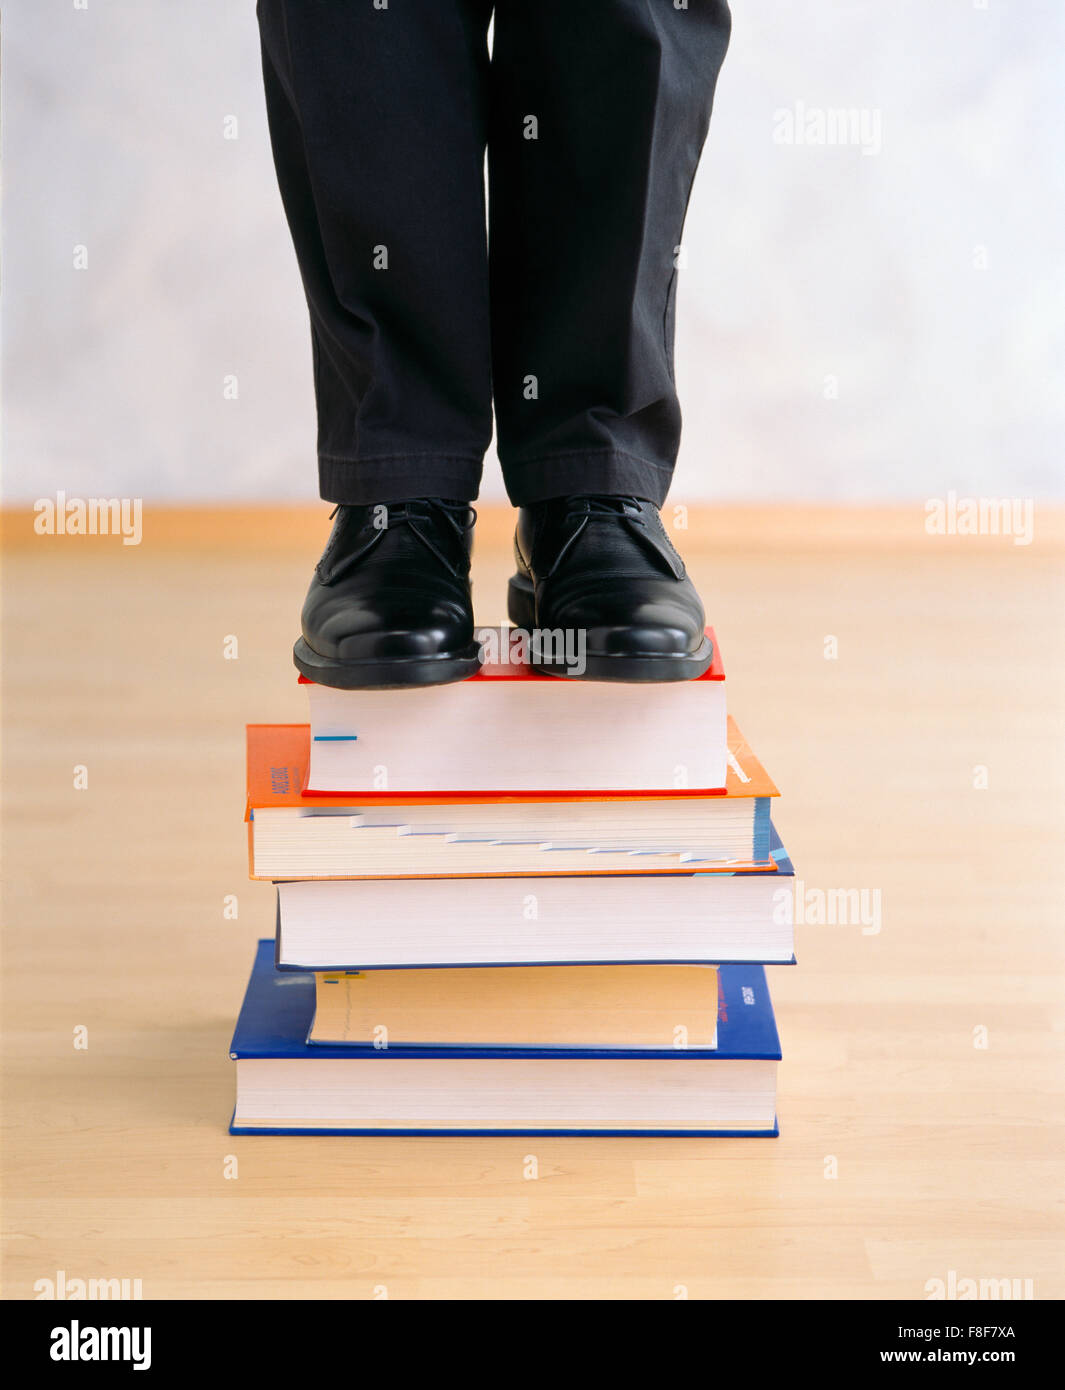 man on a bookpile - Stock Image